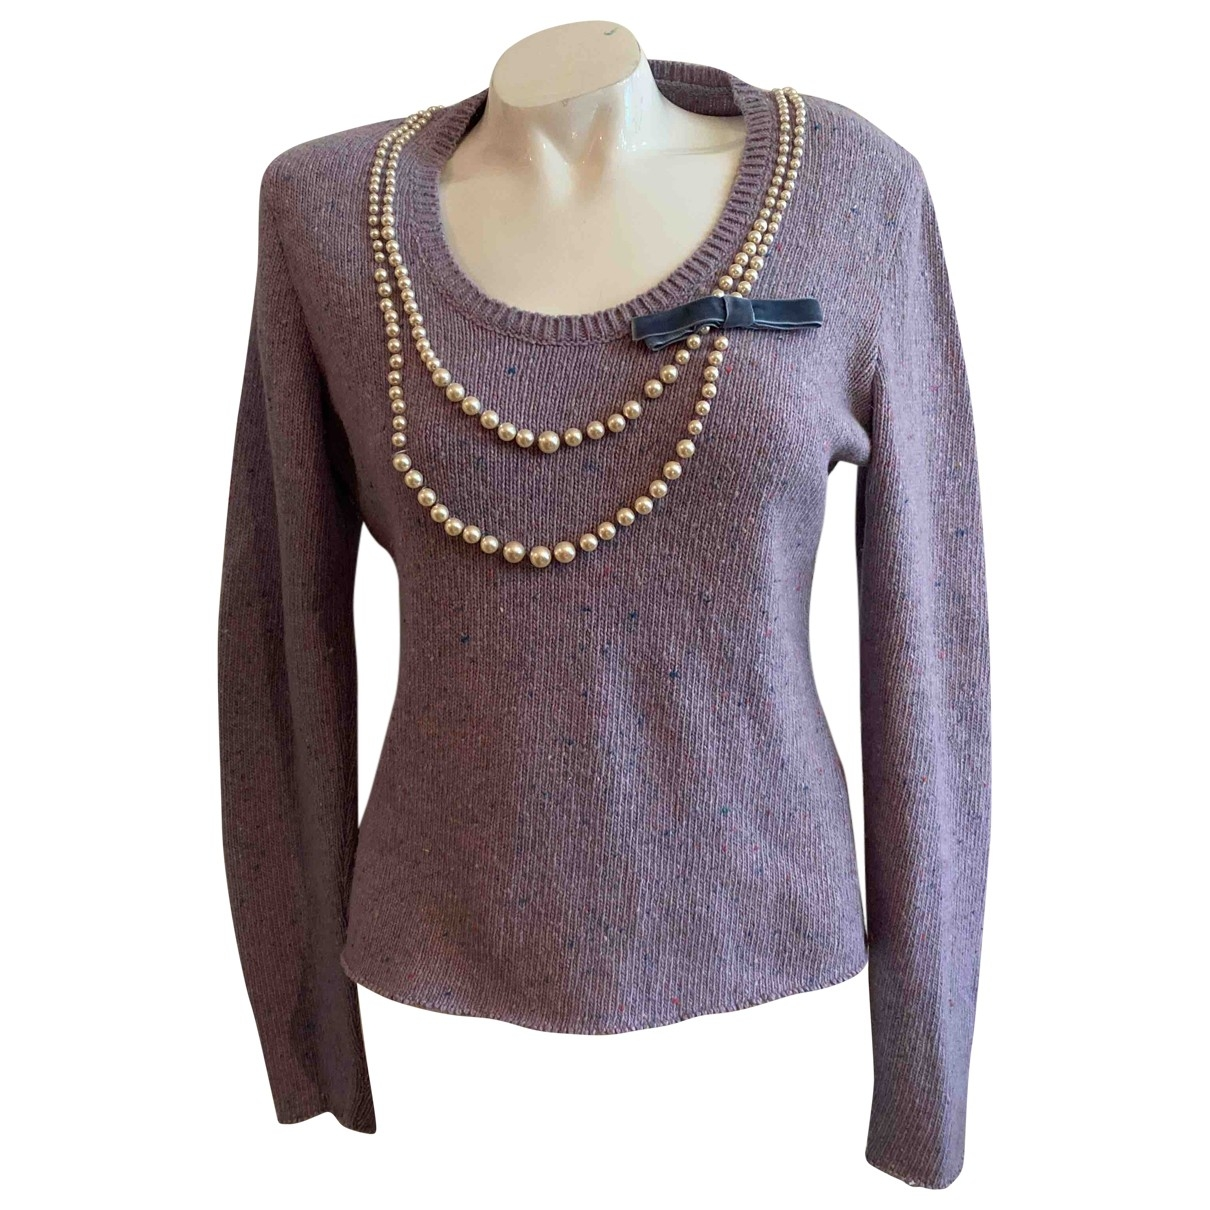 Moschino Cheap And Chic - Pull   pour femme en laine - multicolore